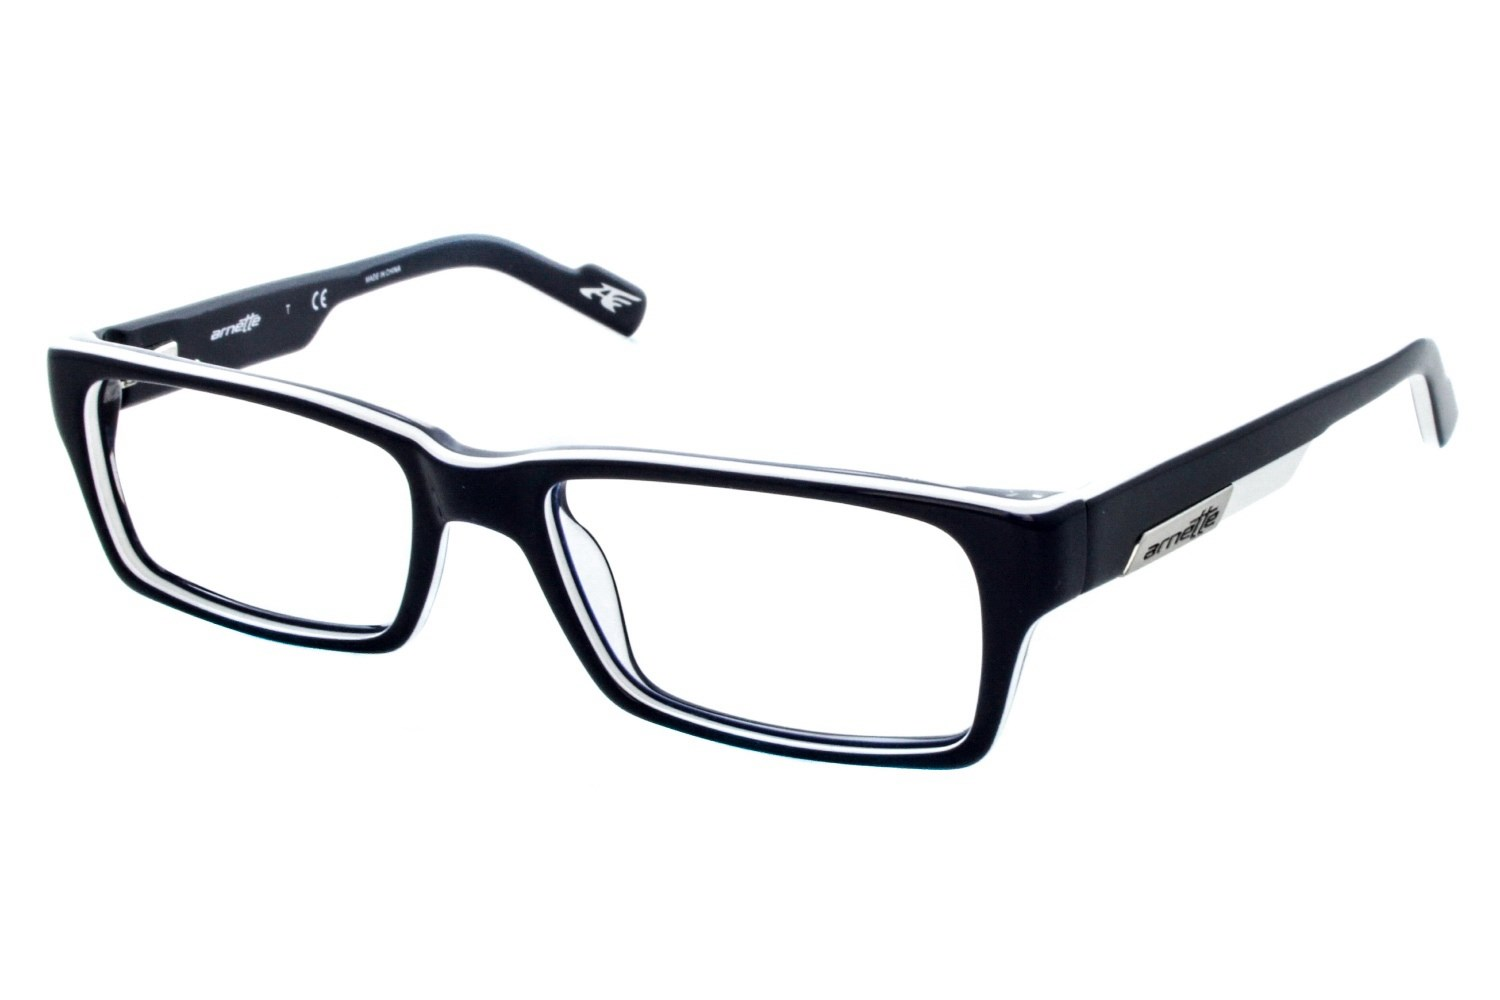 Eyeglass Frame Lookup : Arnette Sync 47 Prescription Eyeglasses Frames ...